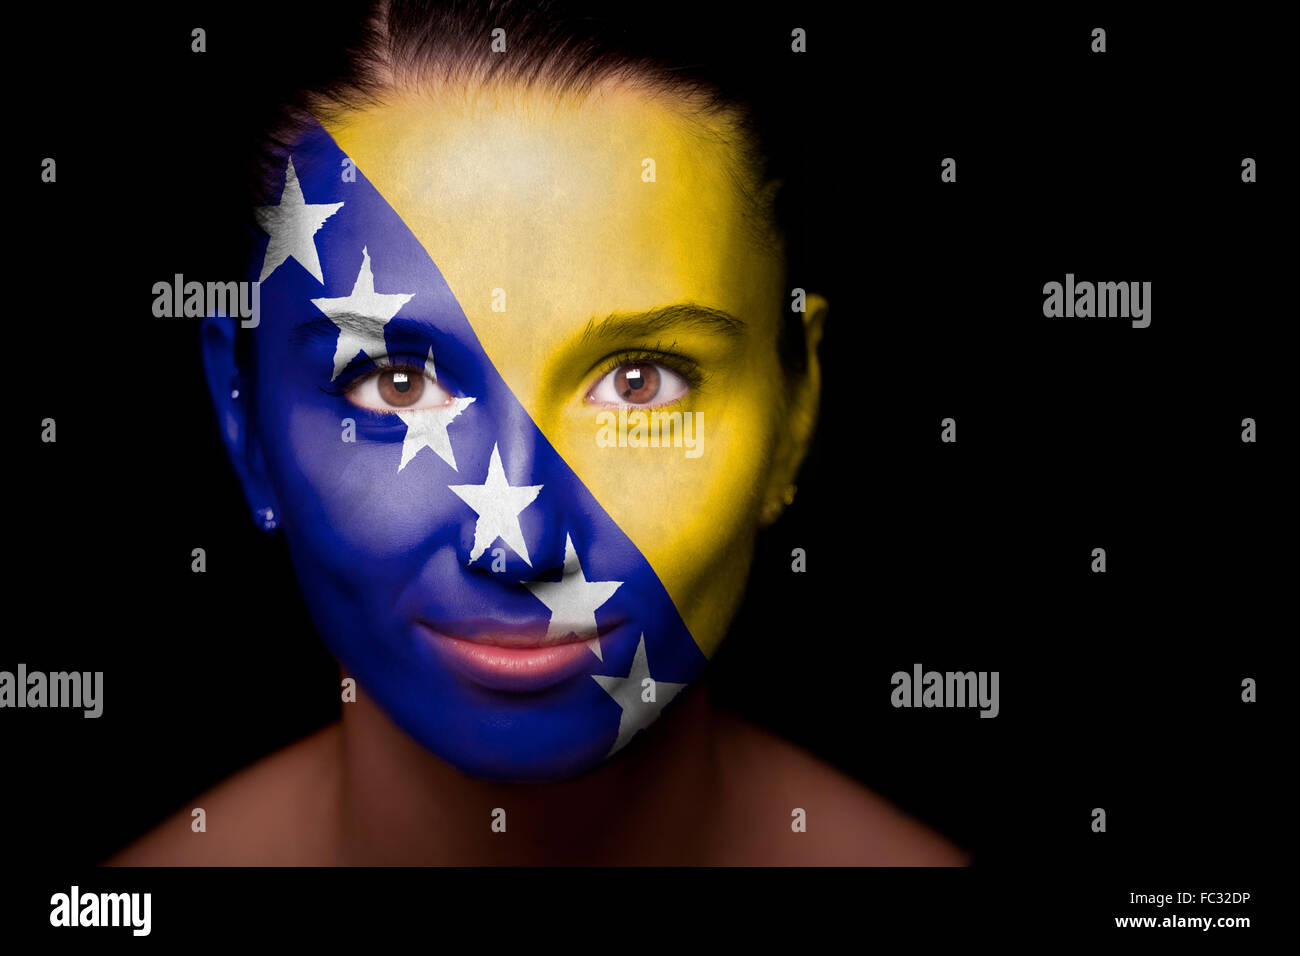 woman with the flag of the Bosnia and Herzegovina - Stock Image